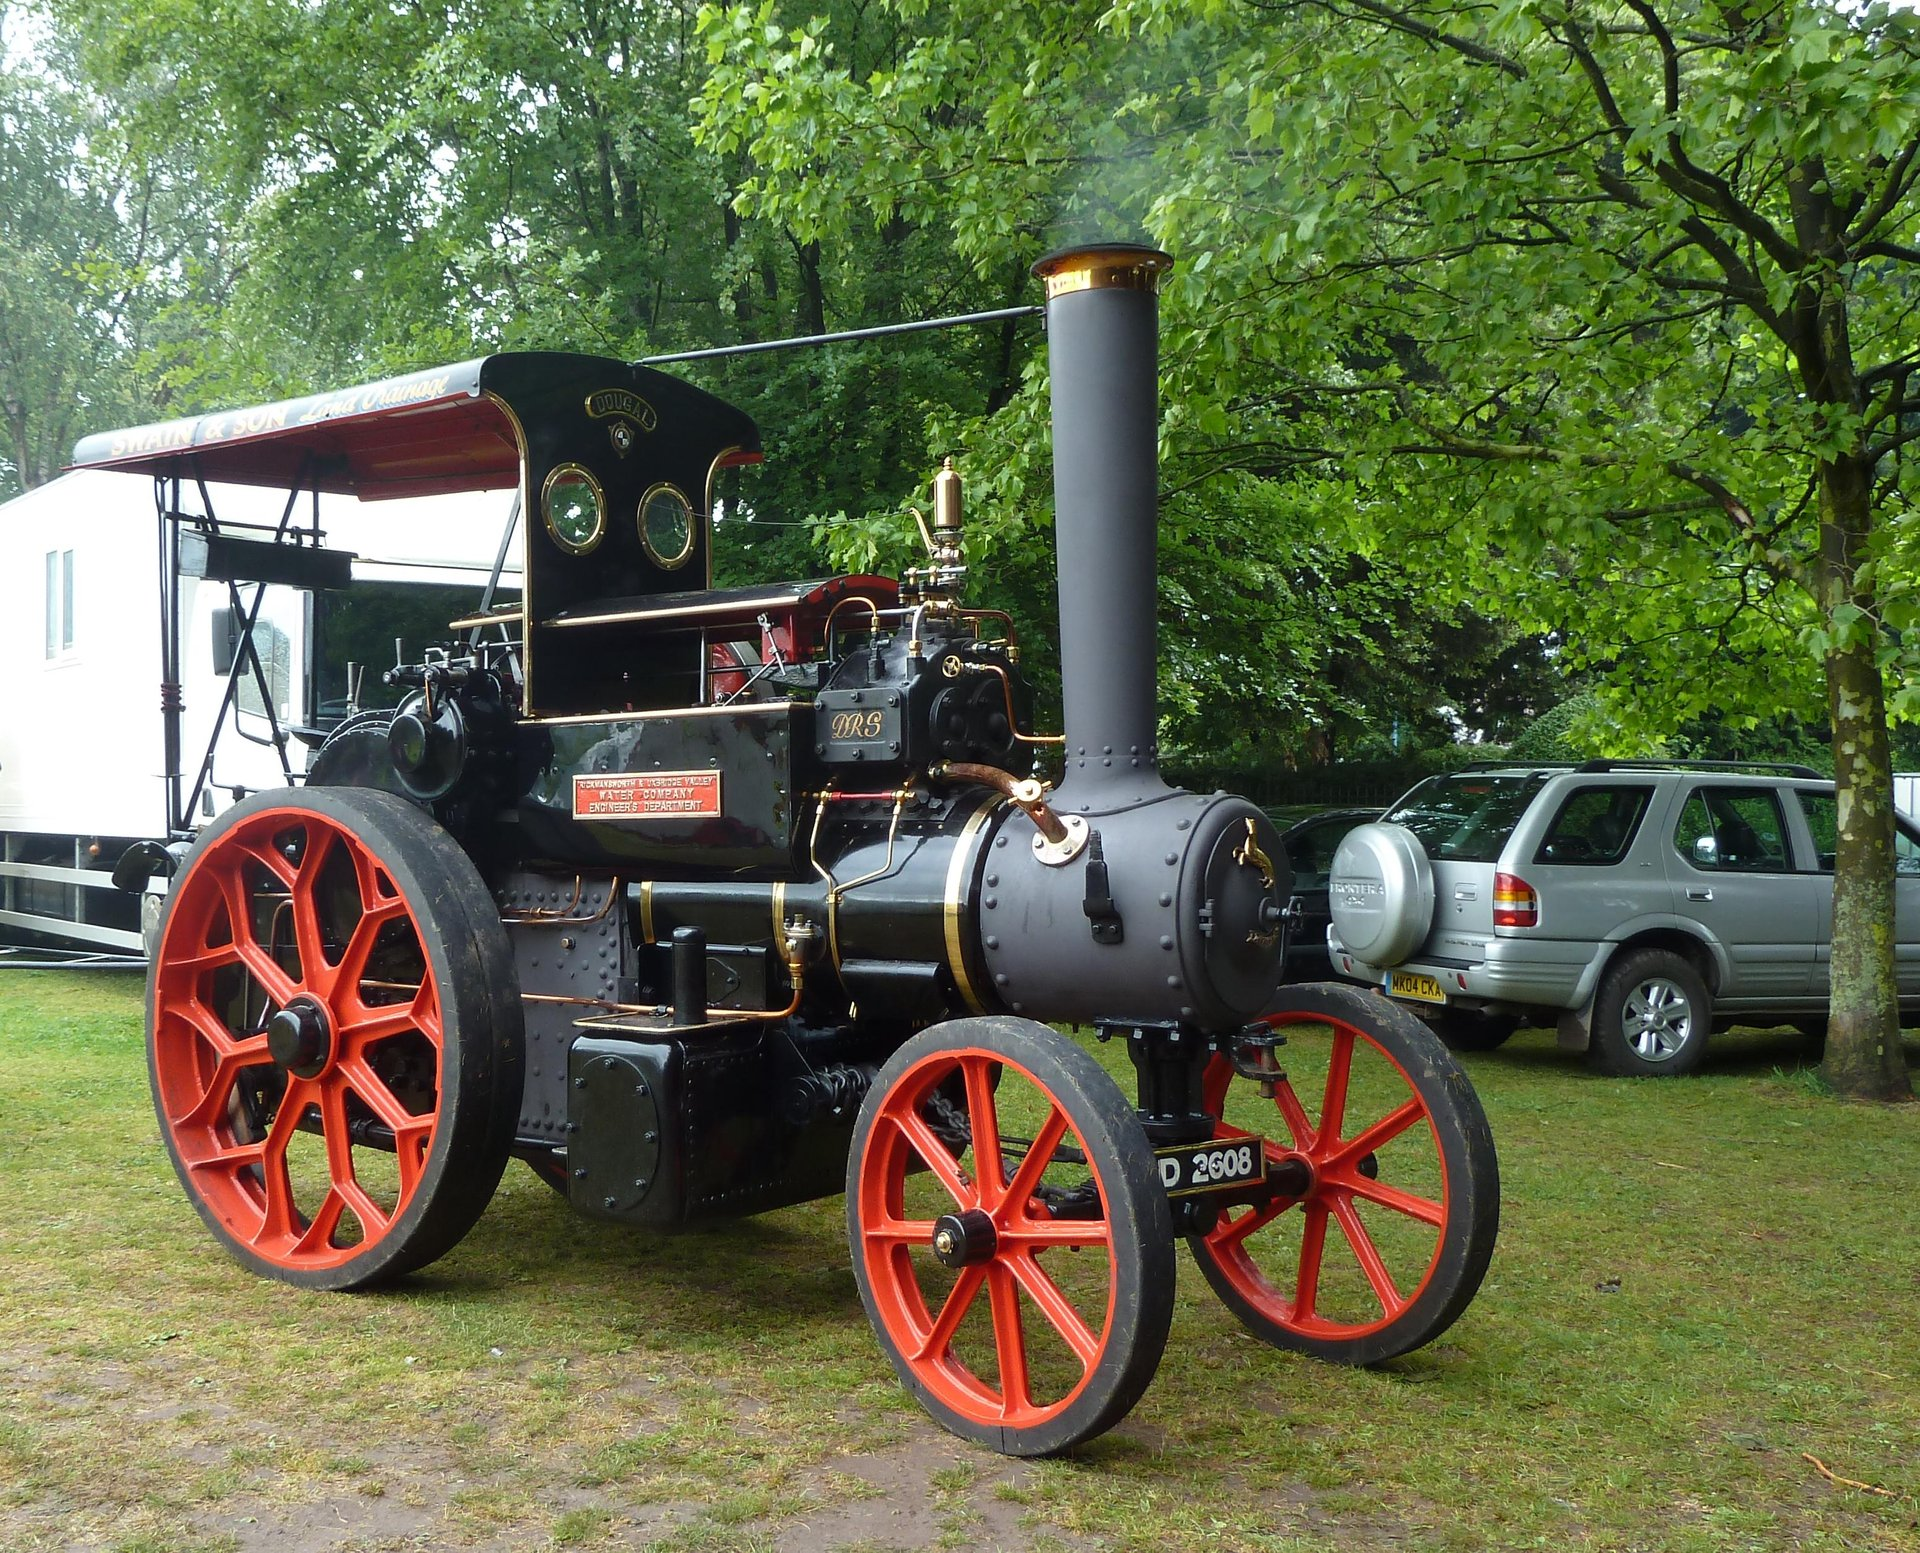 Abergavenny Steam Rally in Wales 2019 - Best Time